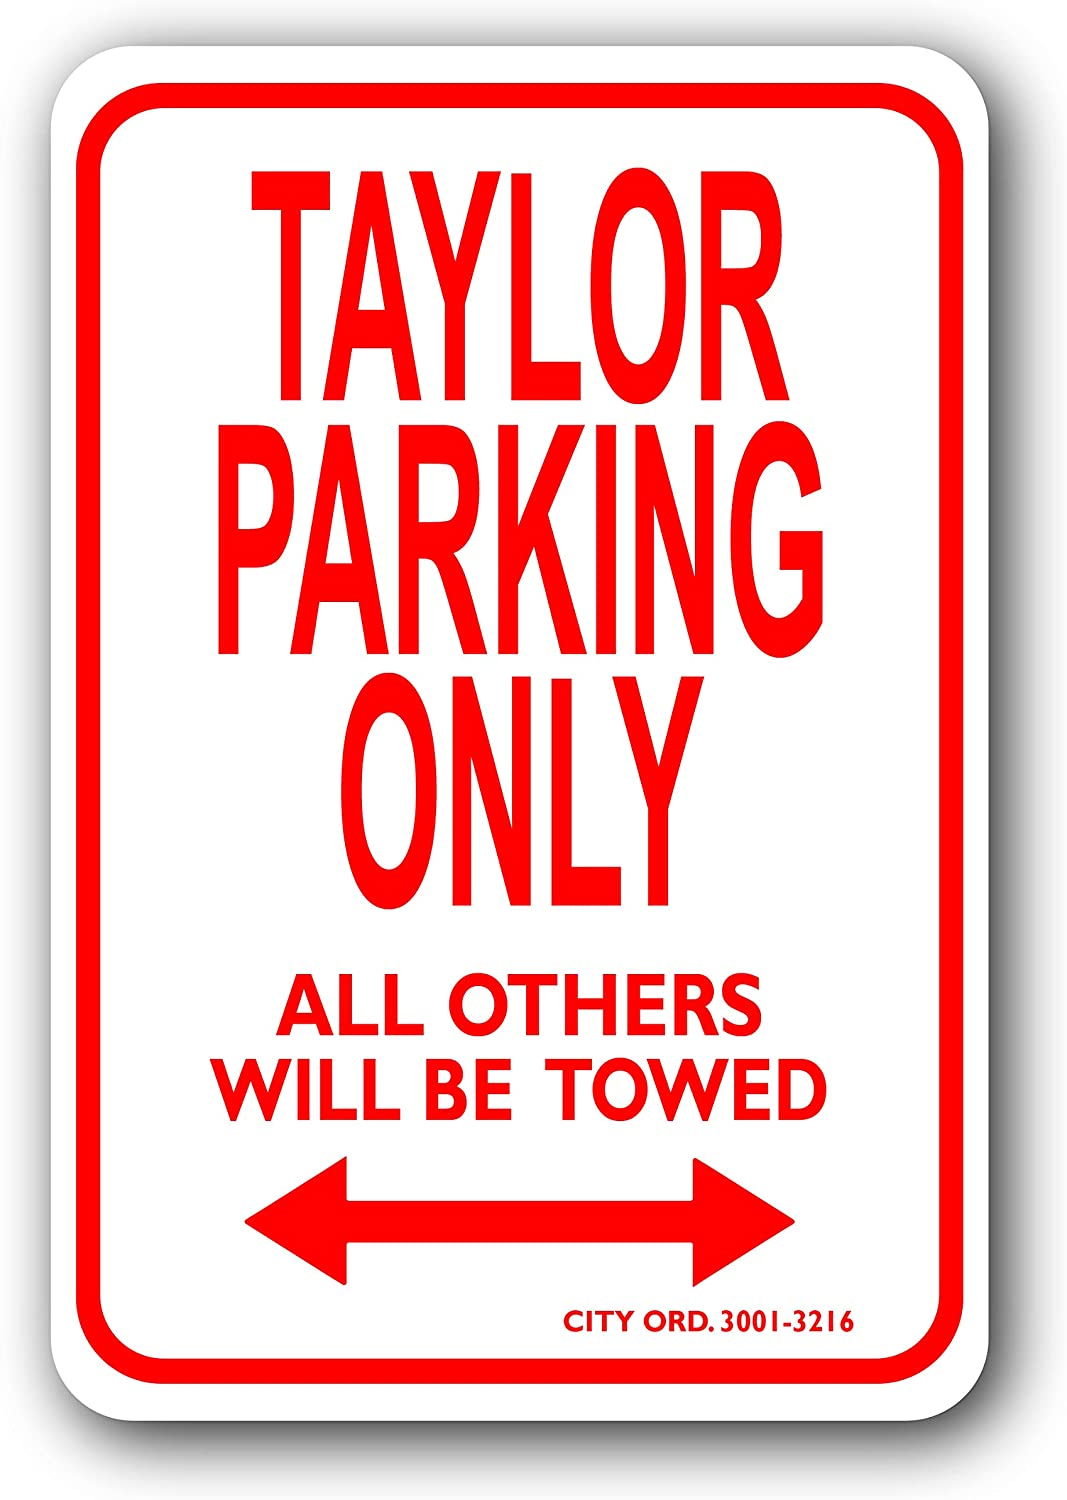 Taylor Mini Parking Sign - Personalized Parking Sign - Novelty Sign for Kids Room/Office Parking/Childrens Room/Man Cave (Car Decals, Street Signs)